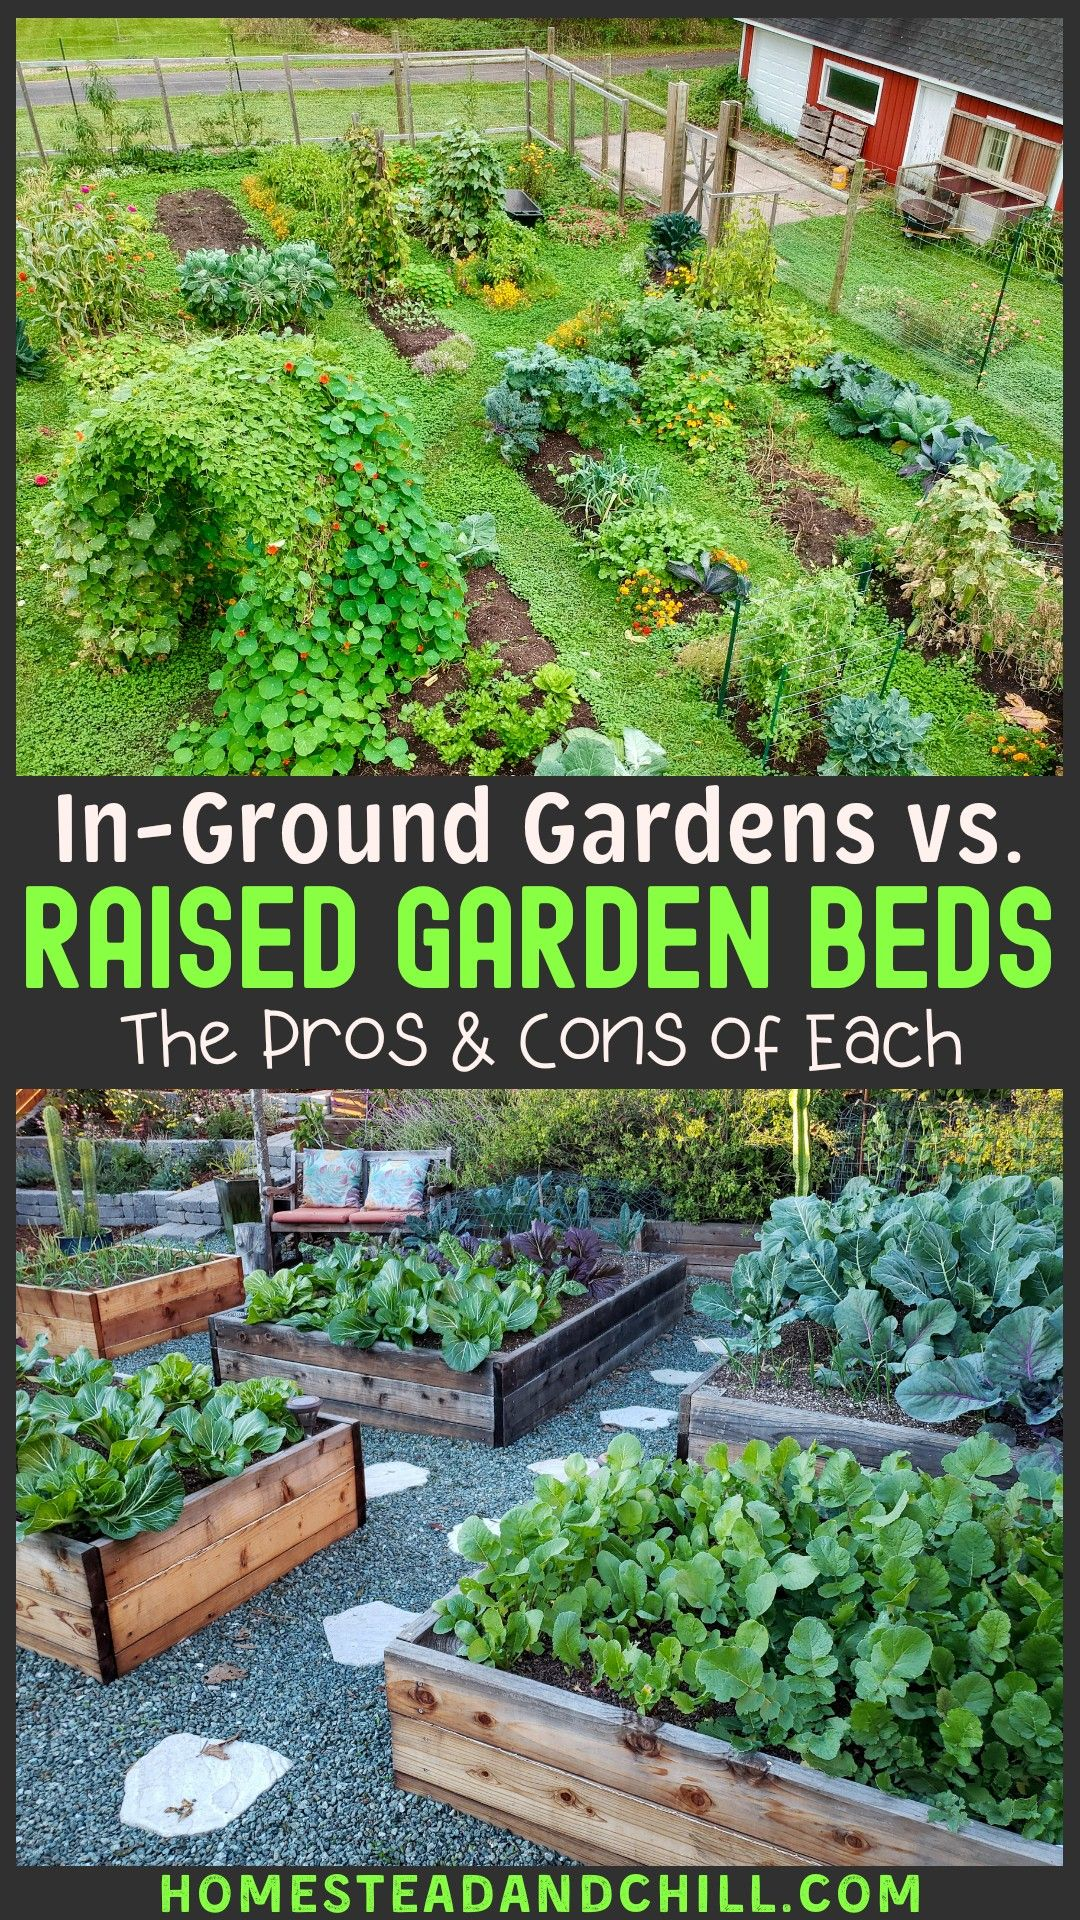 Raised Garden Beds vs. InGround Beds Pros & Cons